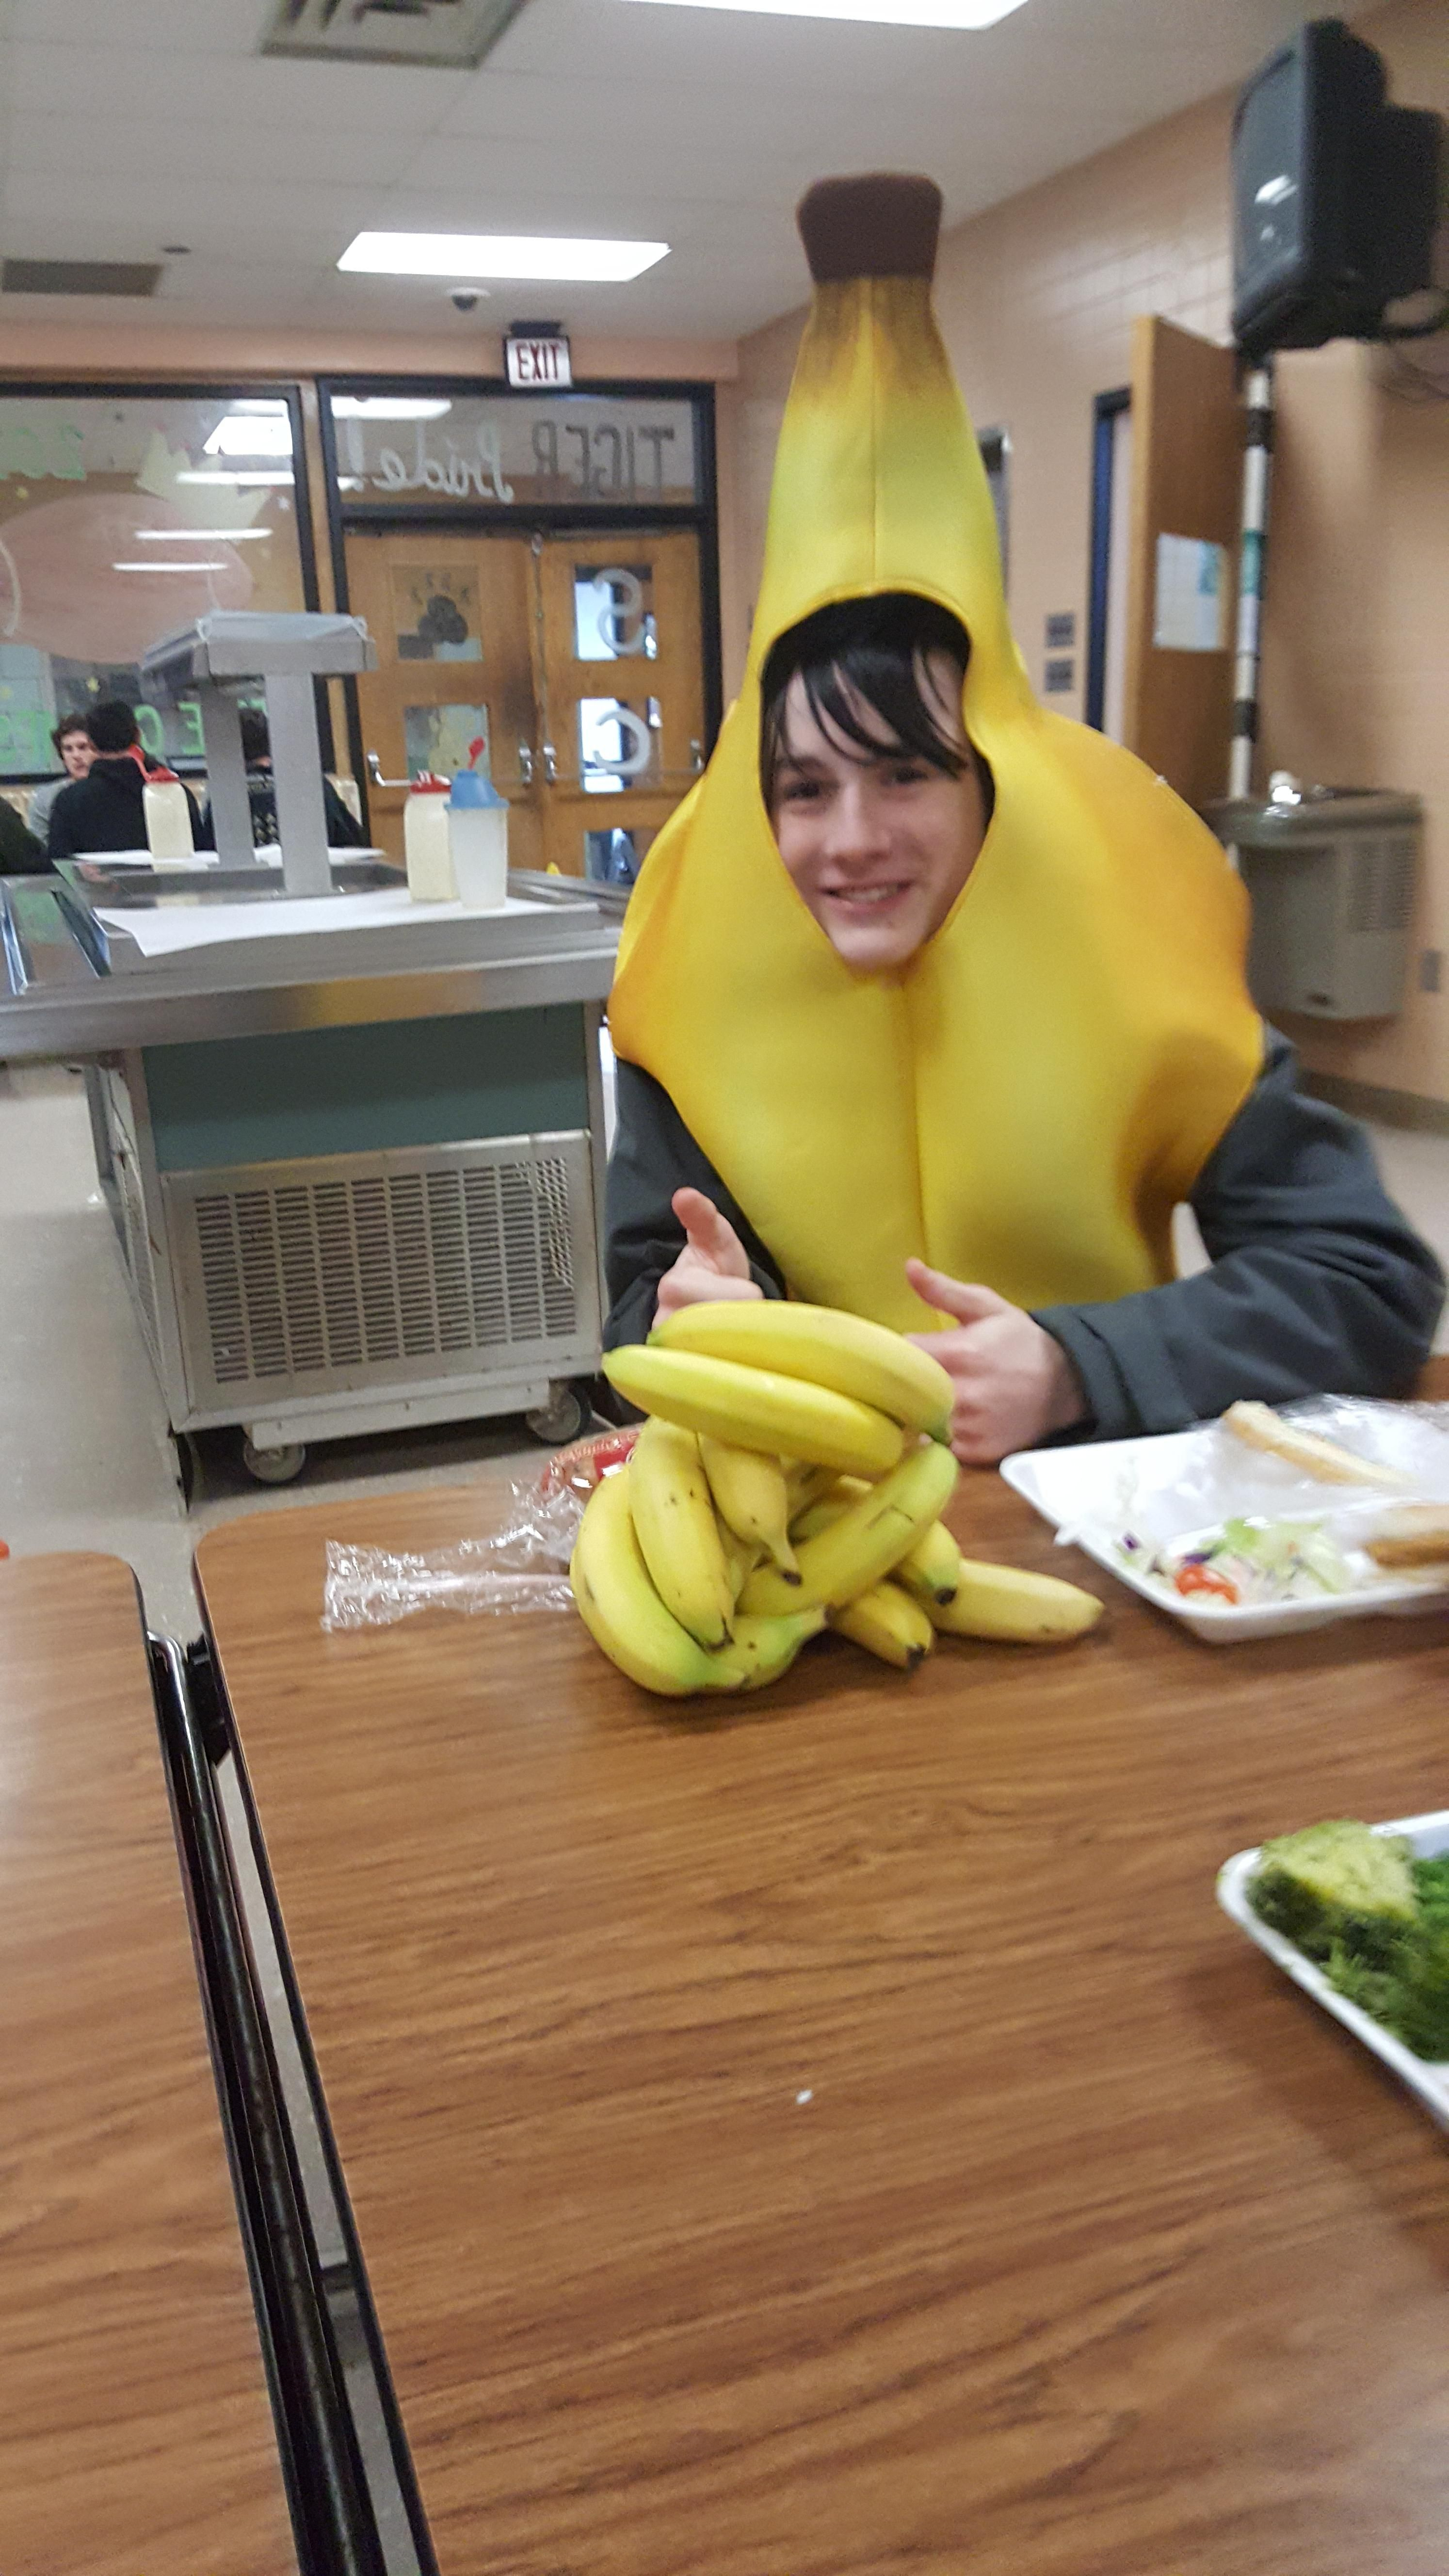 The new kid at my school came in dressed as a banana today. The school lunch included a banana so naturally, everyone was donating their bananas to him